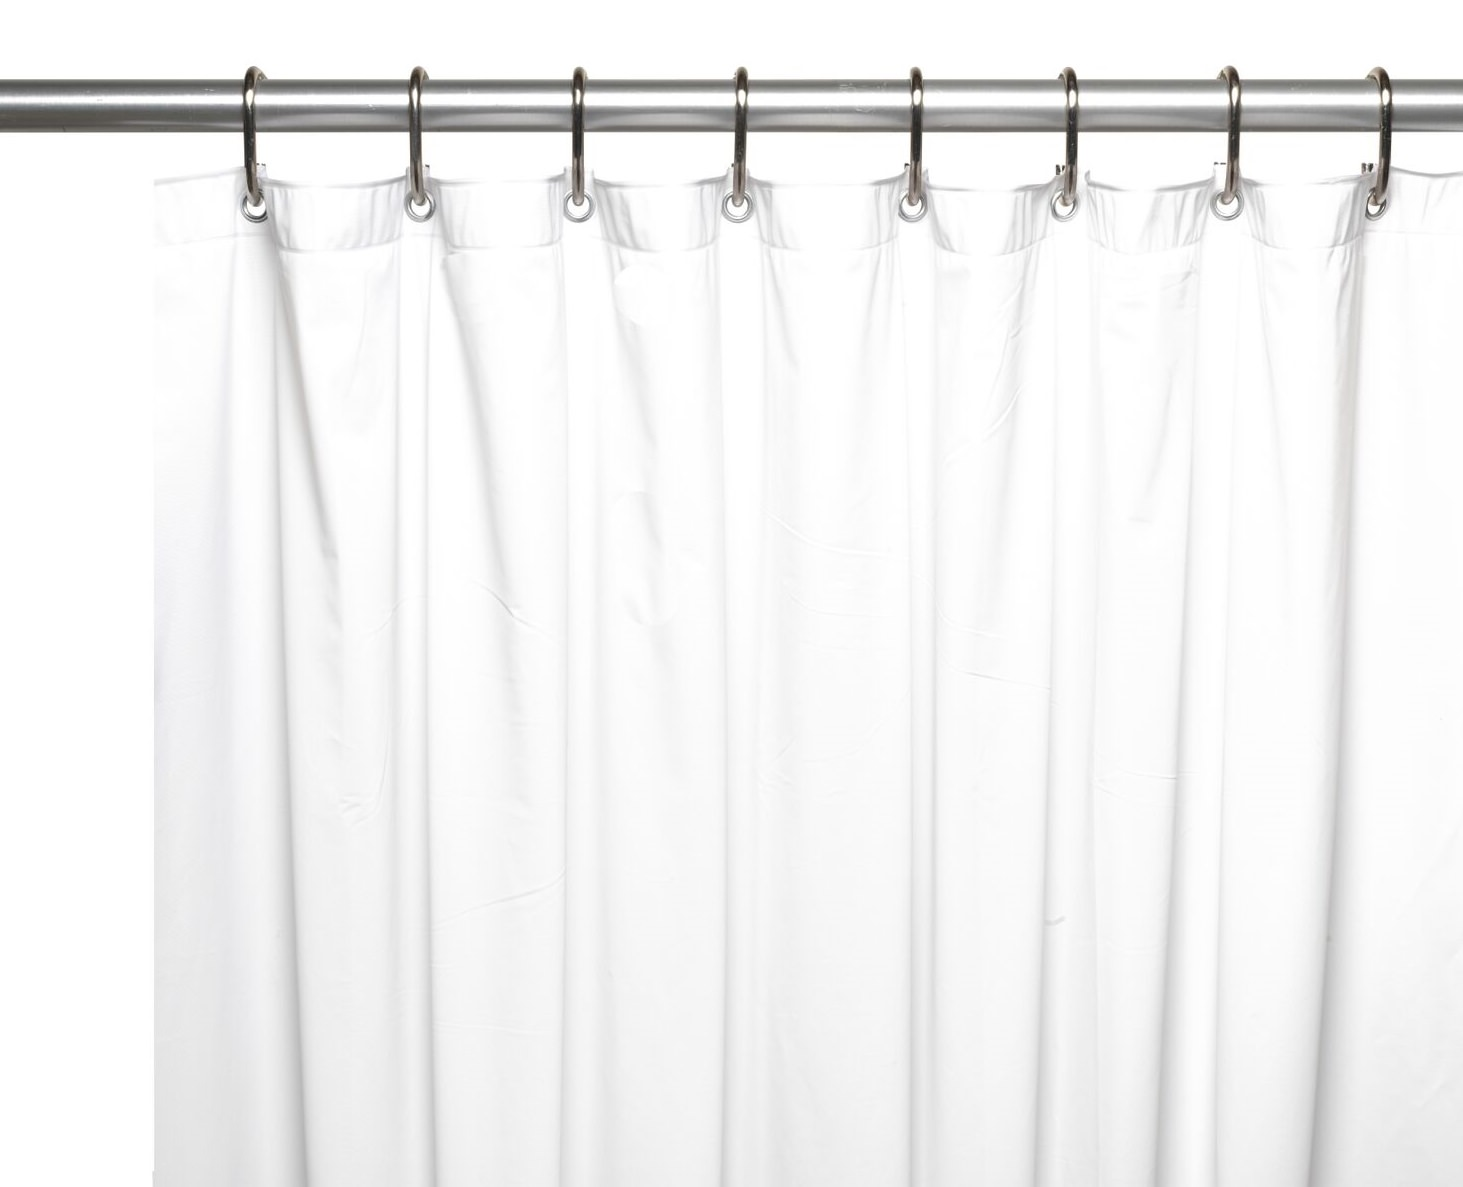 108 Long Shower Curtain Royal Bath Extra Wide 5 Gauge Vinyl Shower Curtain Liner With Metal Grommets In White Size 108 Wide X 72 Long